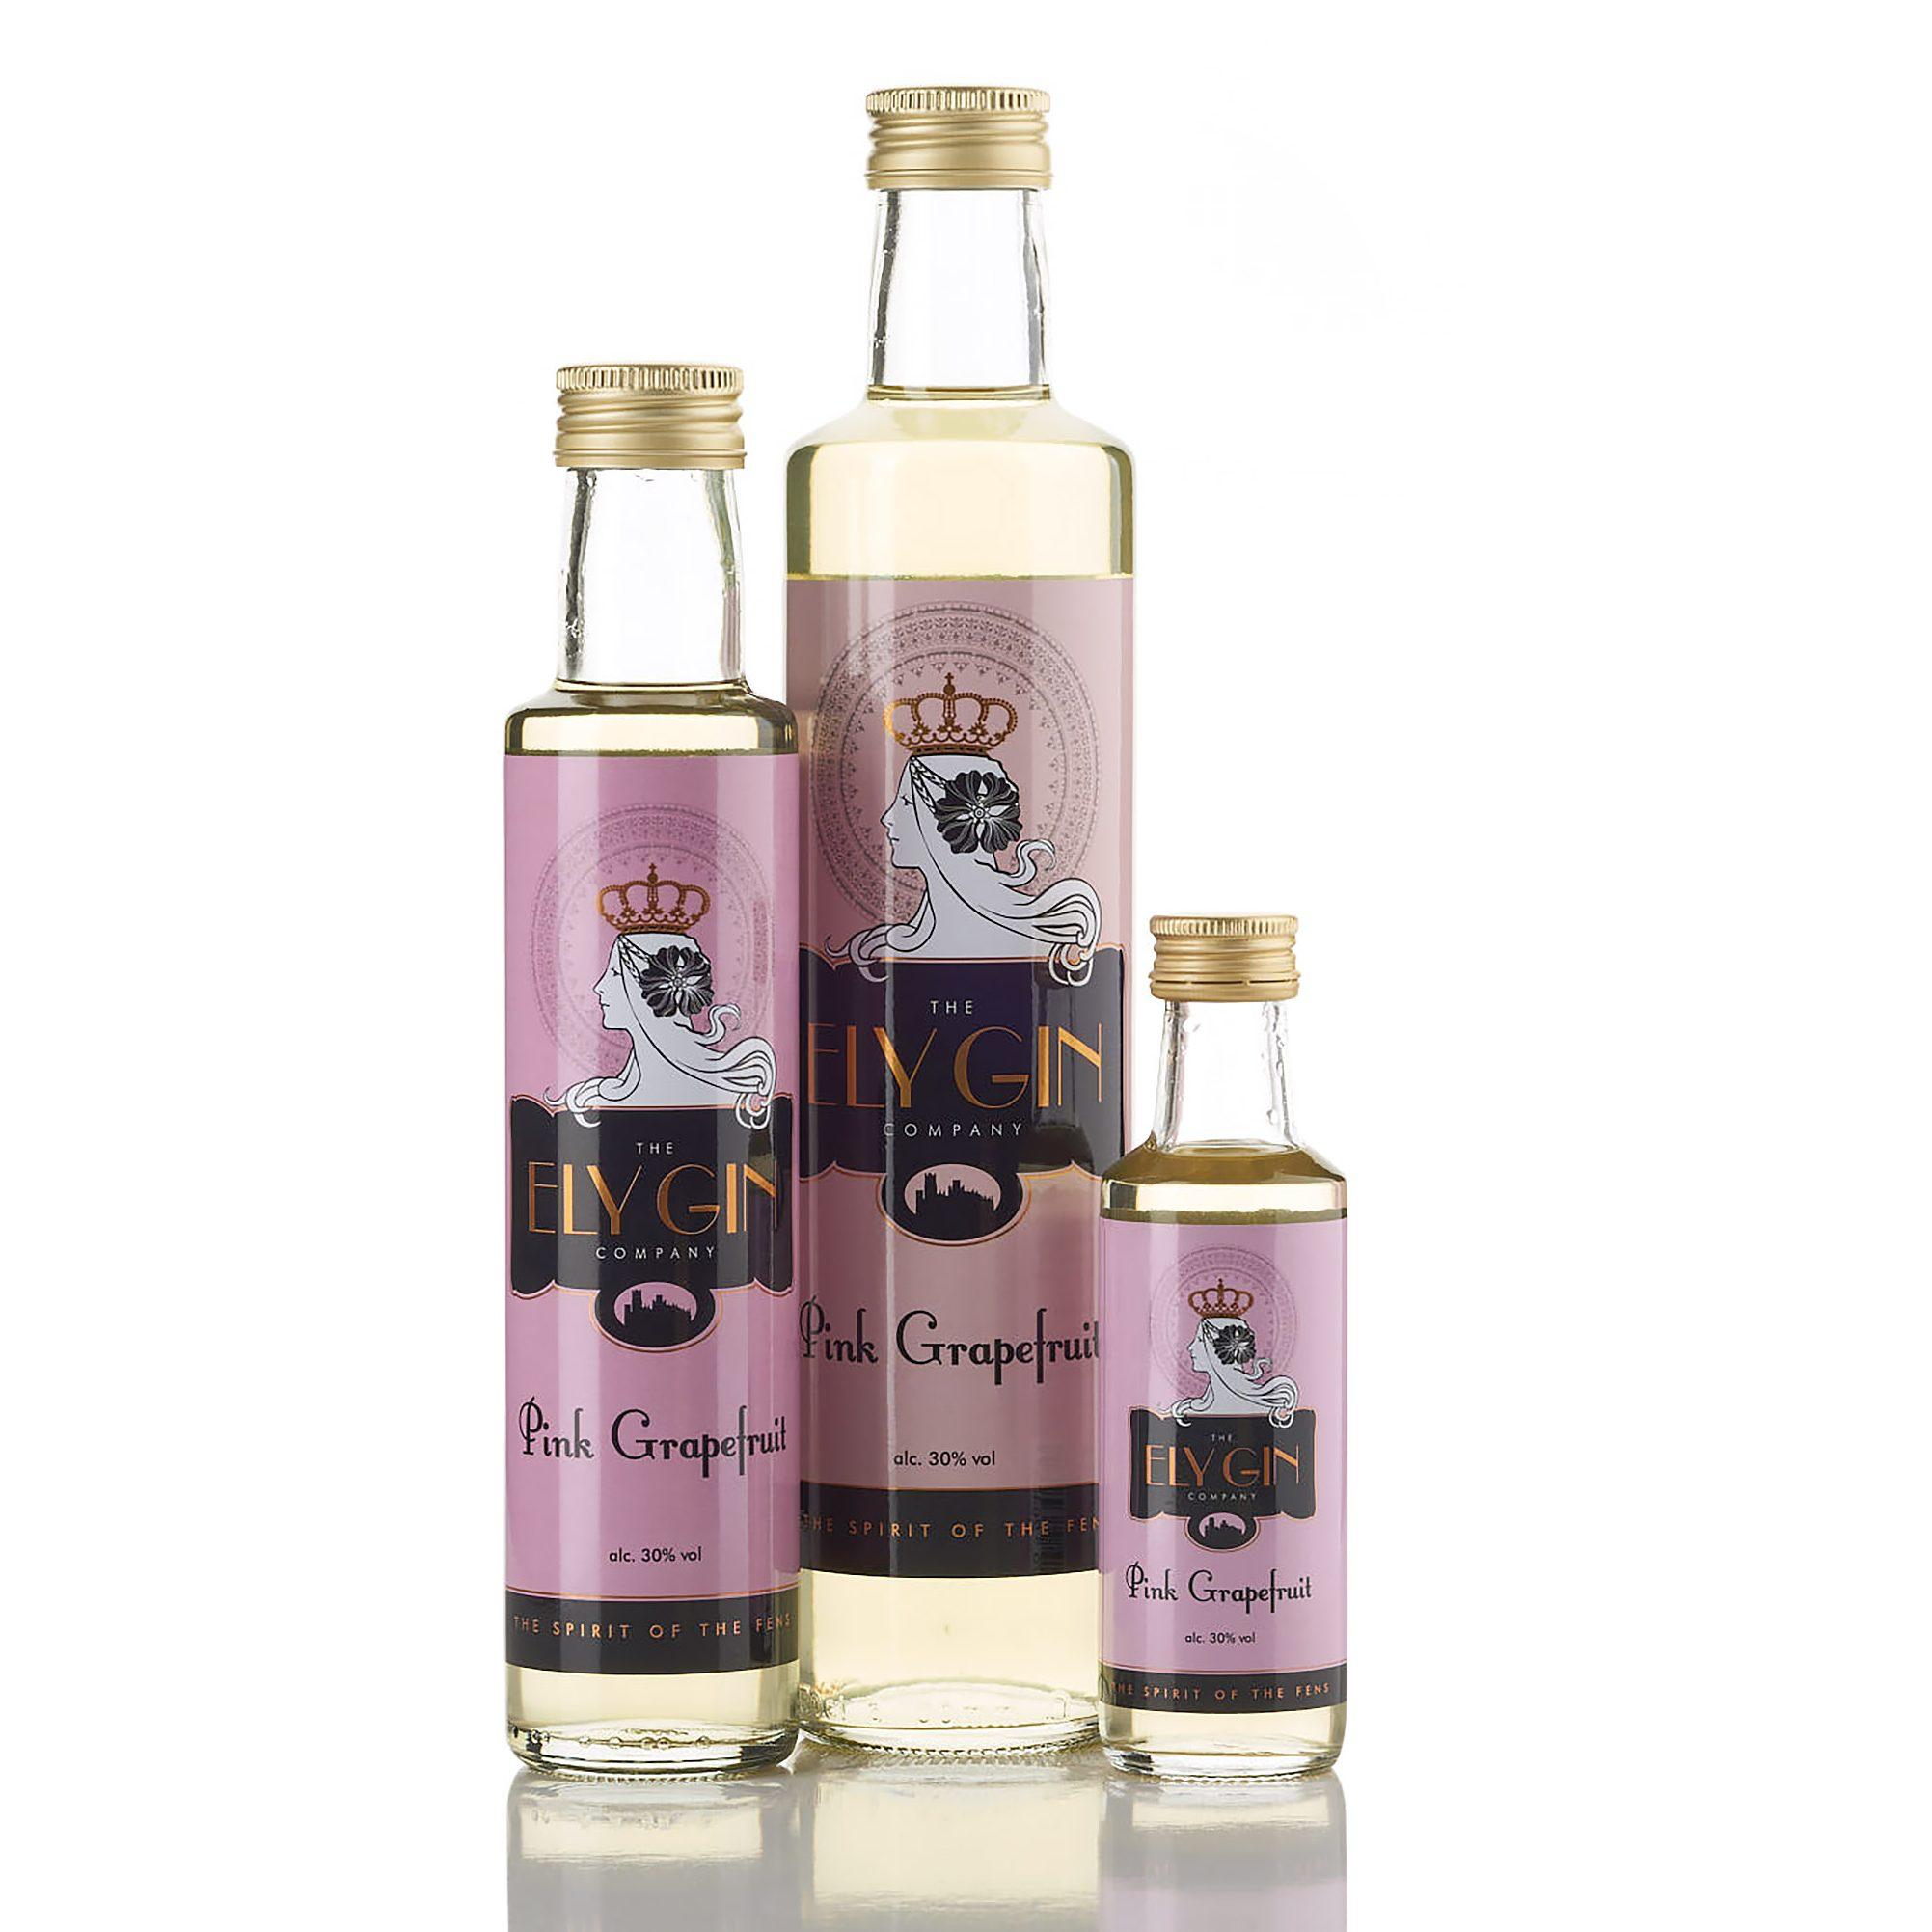 Ely Gin with Pink Grapefruit 30% 100ml, 250ml & 500ml